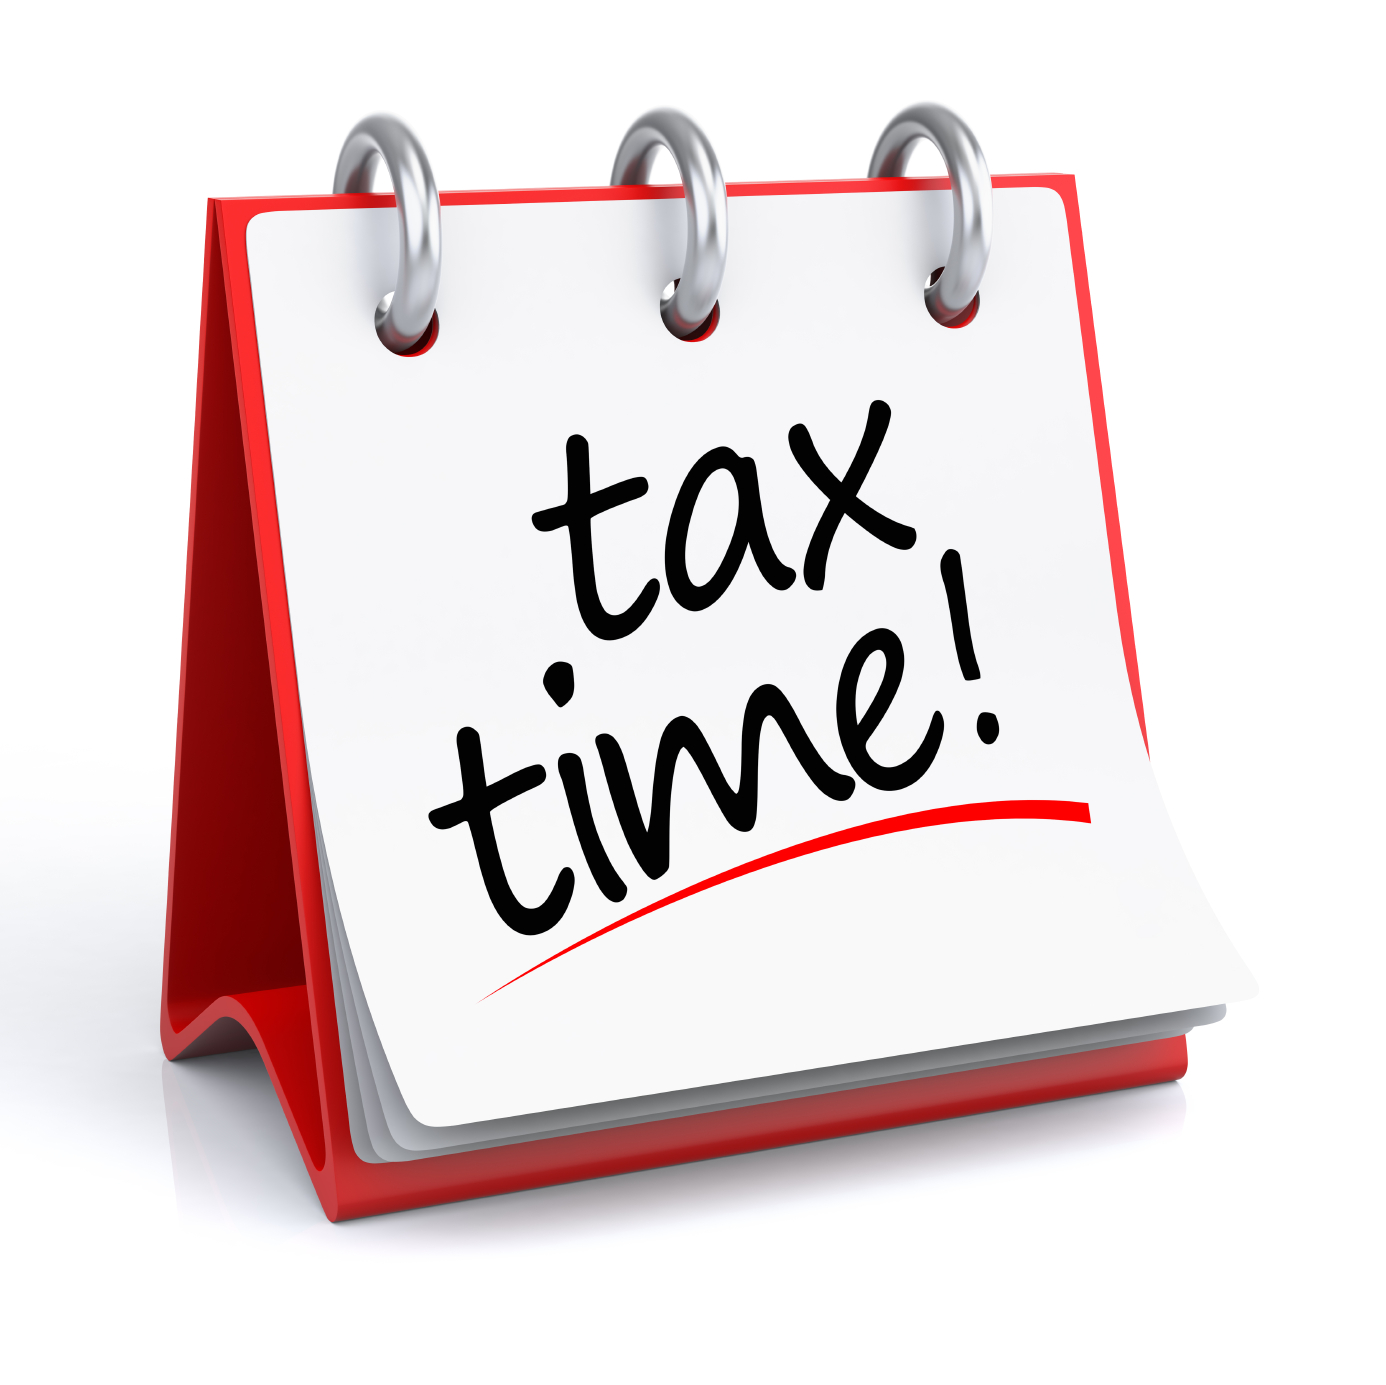 IRS Accepting E-files: File Your Taxes Today! | The TurboTax Blog